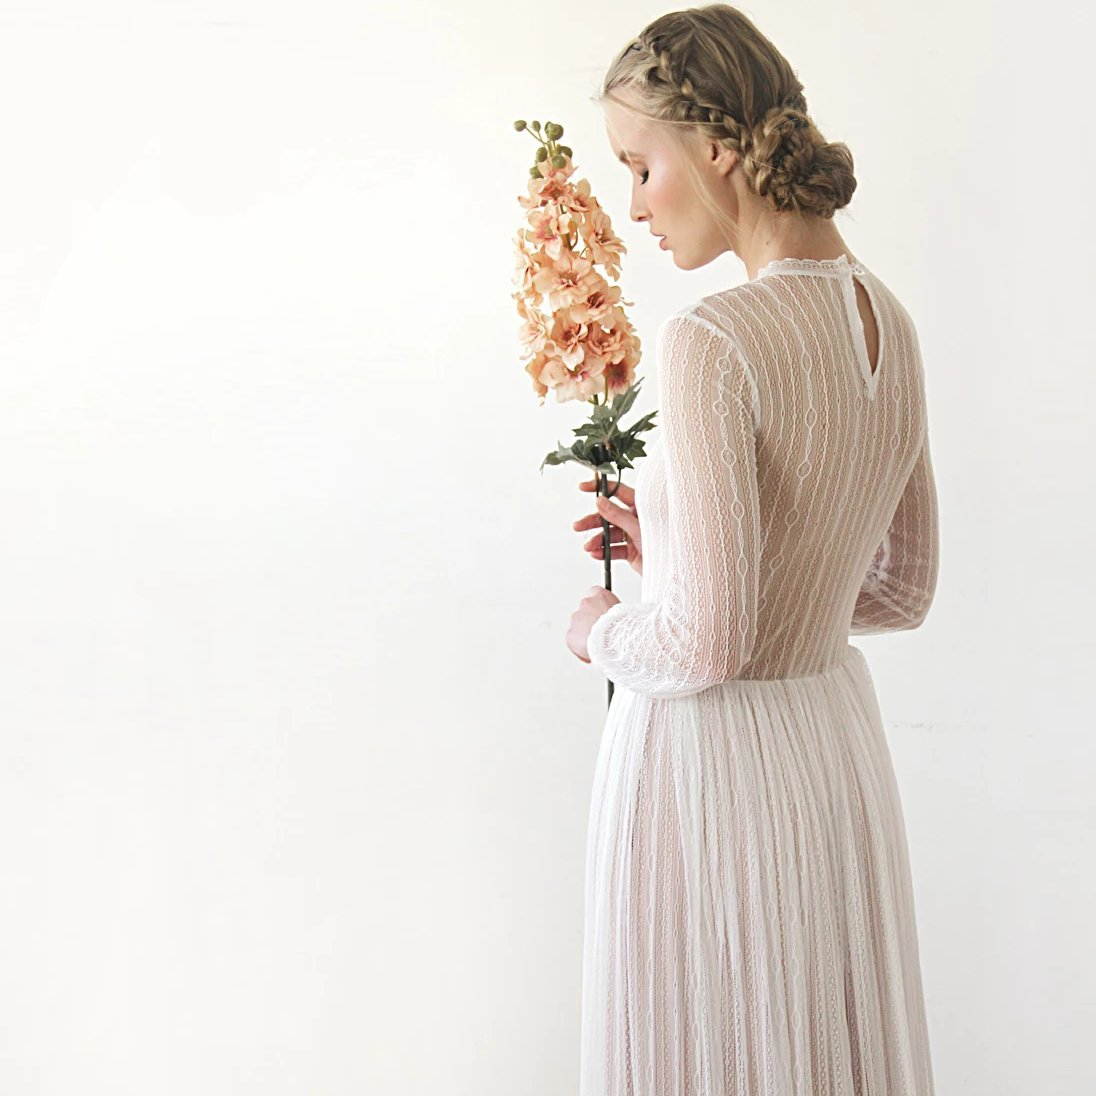 Modest Lace Wedding Dress, Gentle Stripes Pattern Maxi Dress, Vintage Style Long Sleeves Wedding Dress 1209